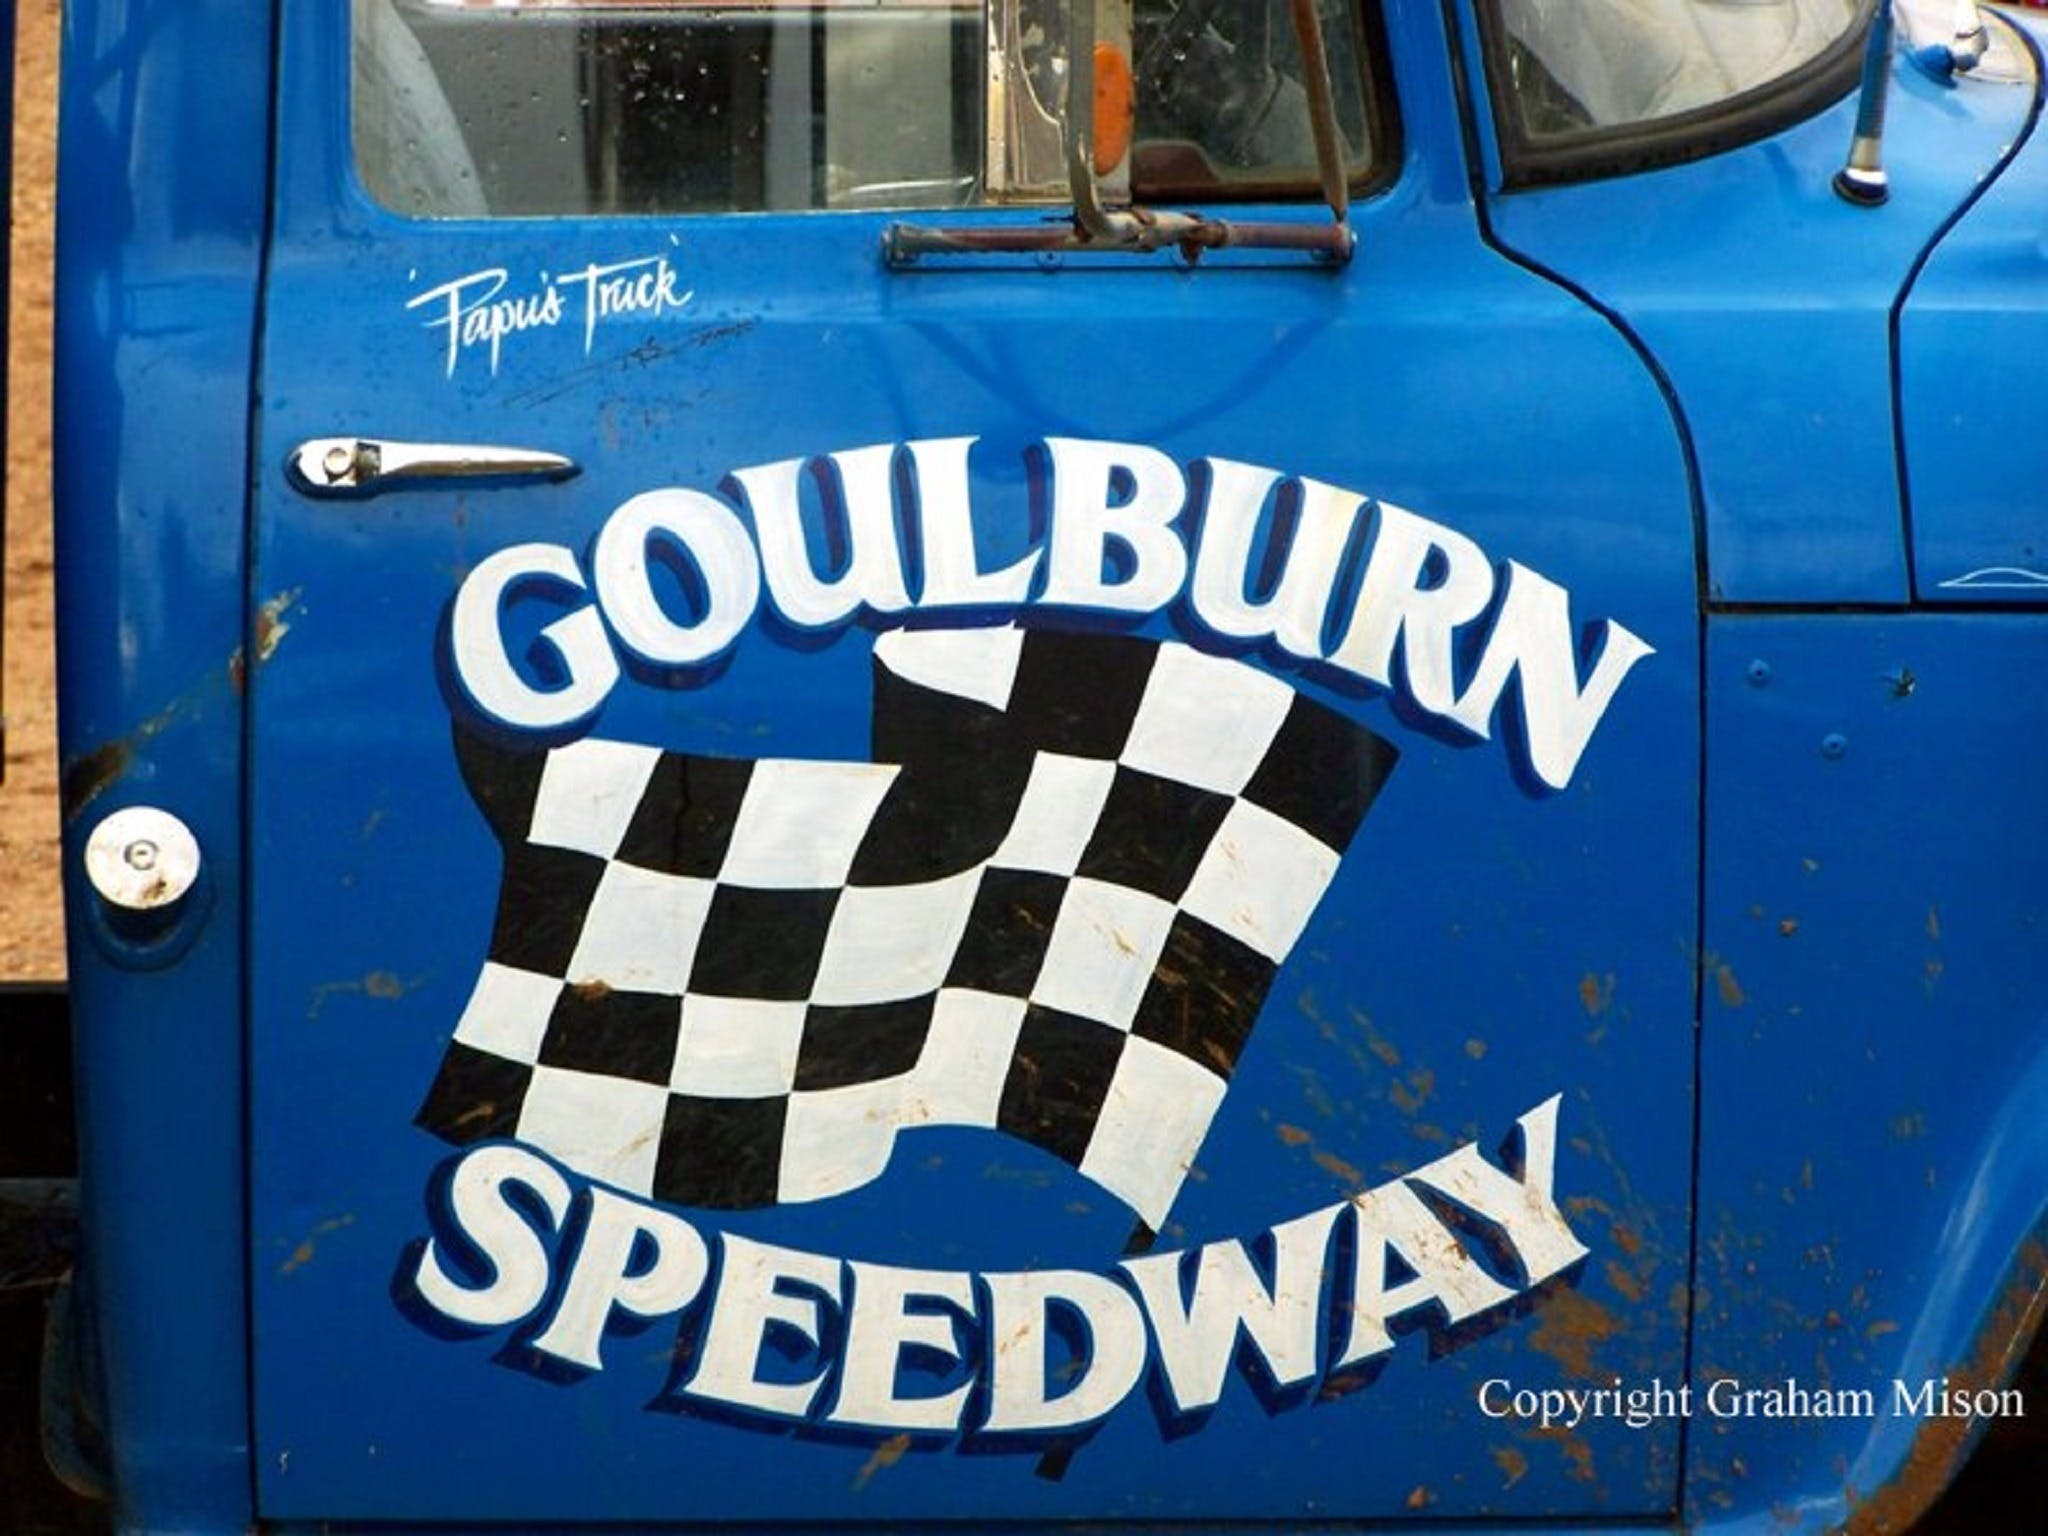 50 years of racing at Goulburn Speedway - Australia Accommodation